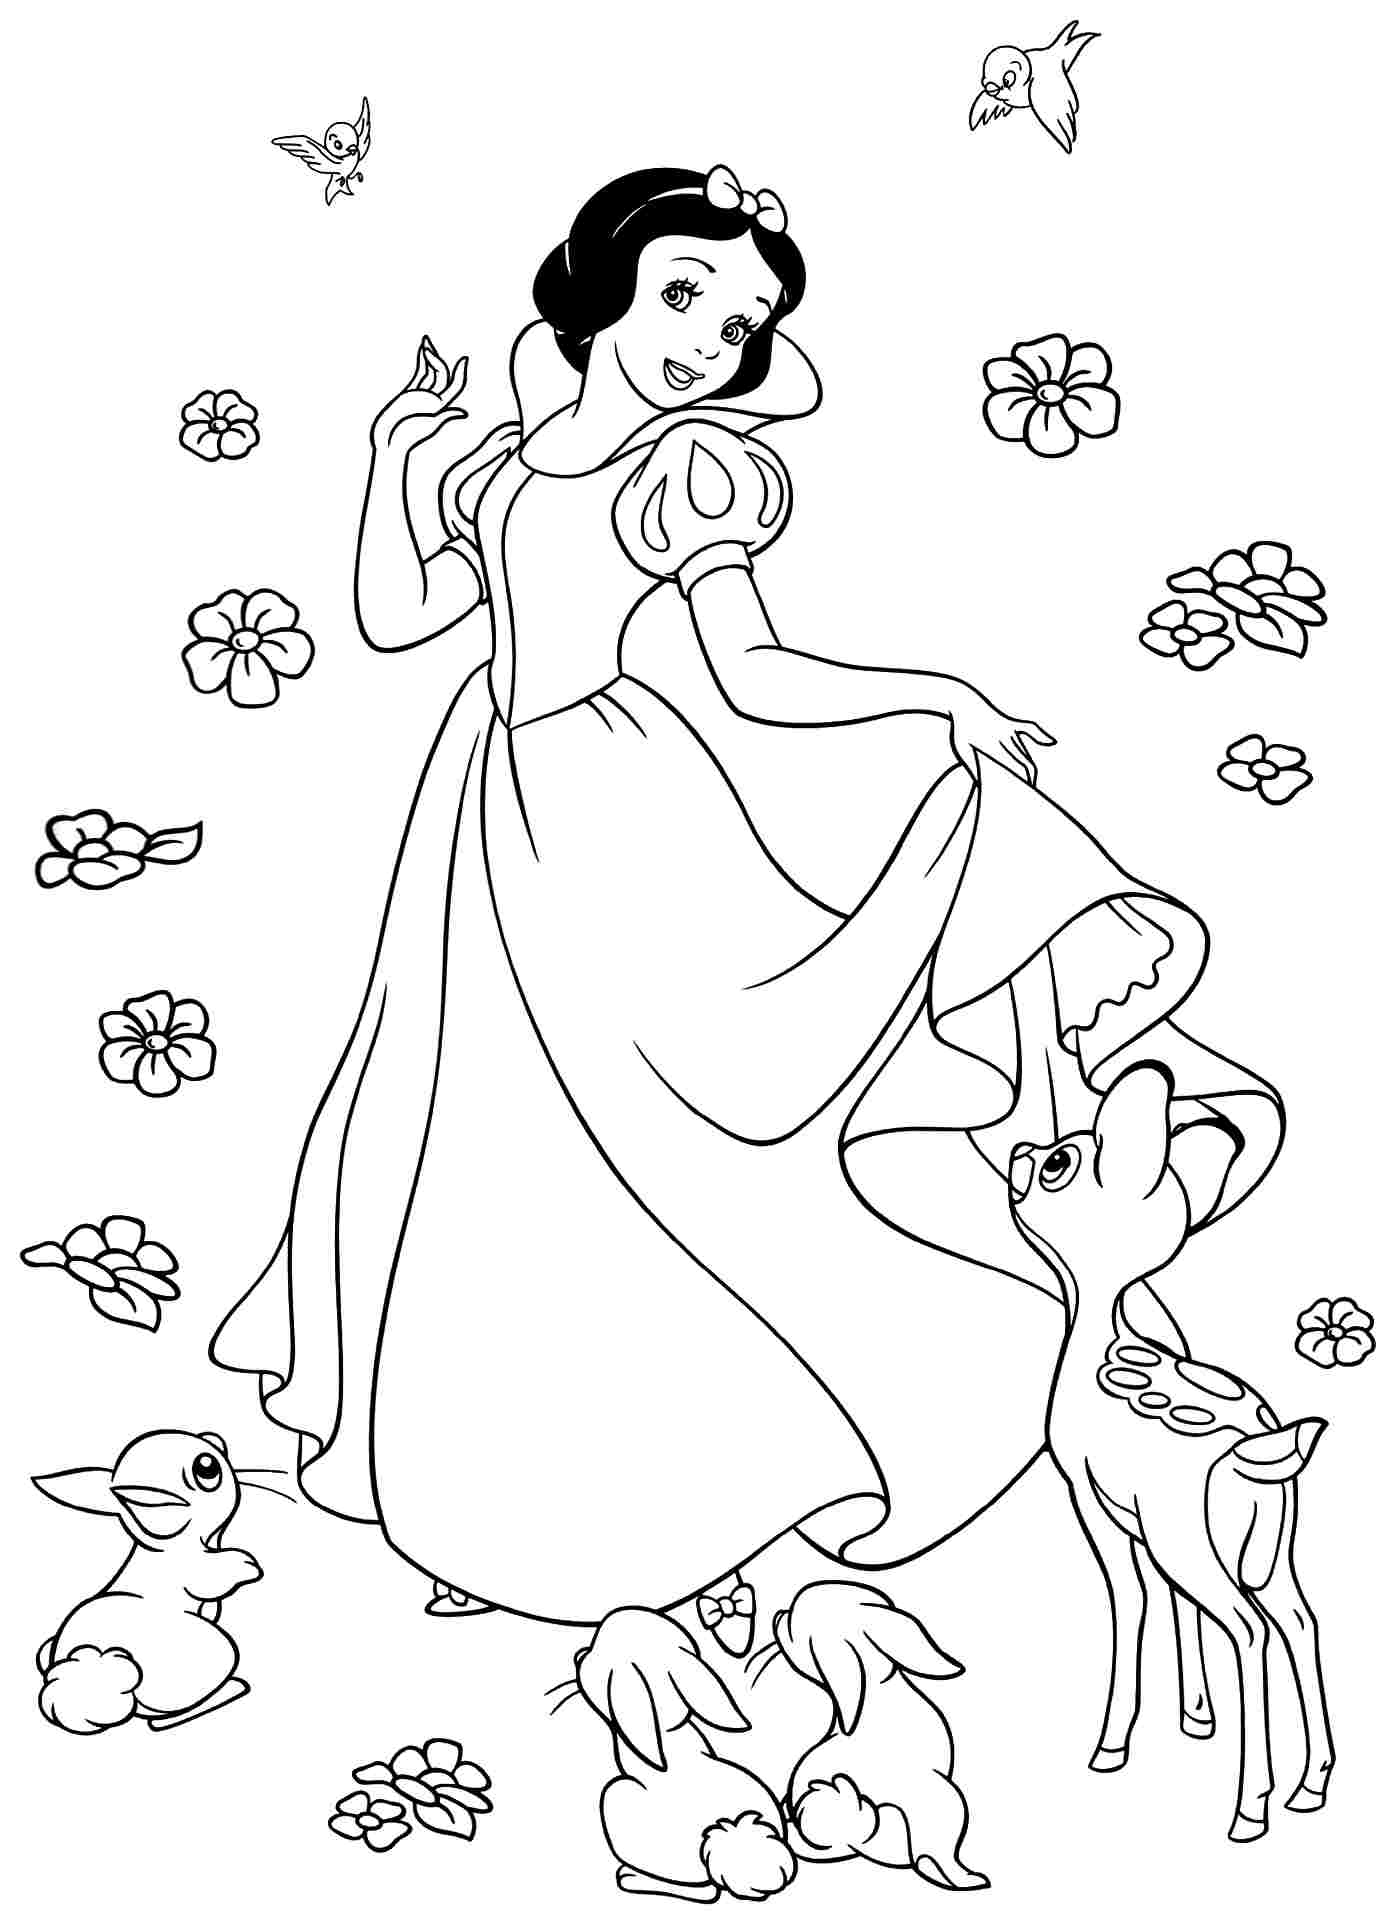 princess coloring pages online disney princesses best coloring pages free coloring online coloring pages princess